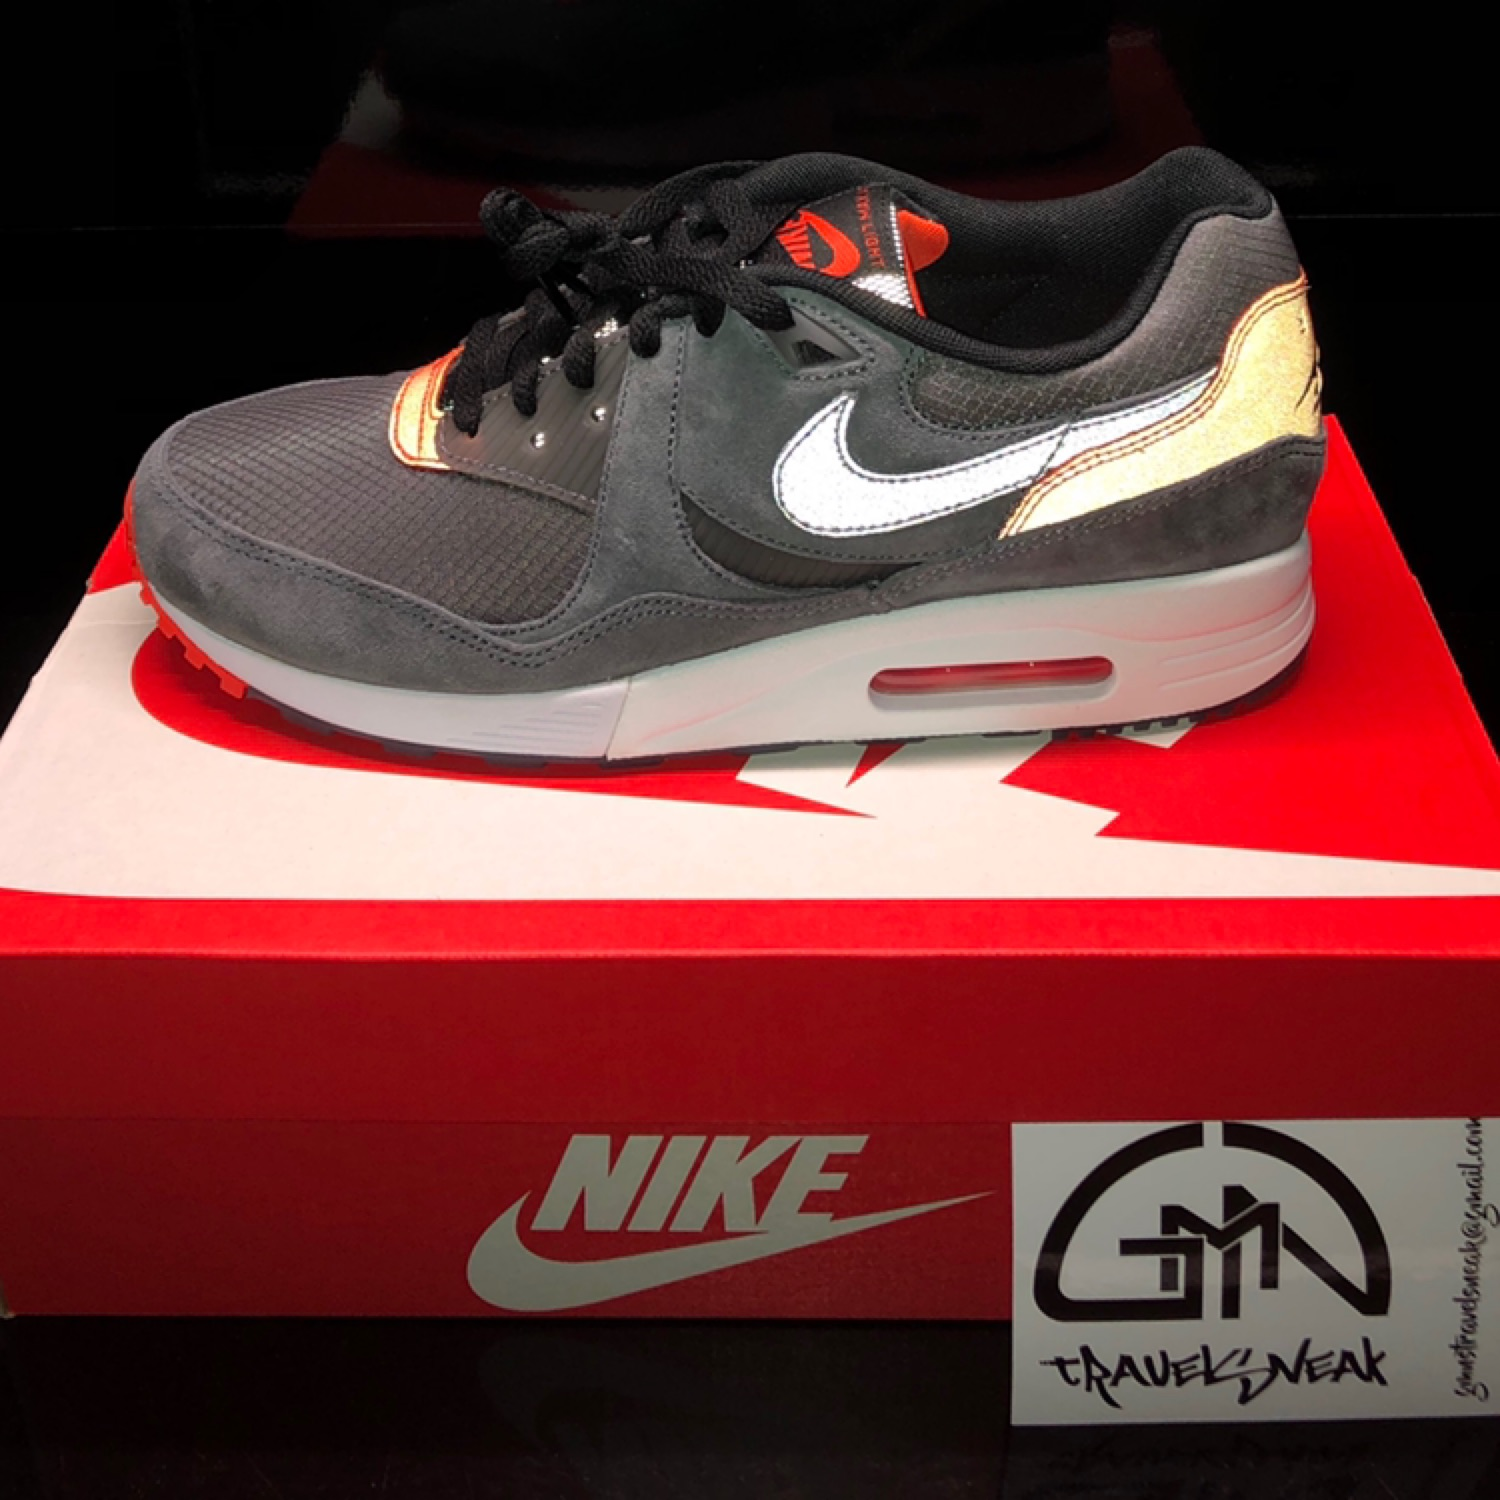 Nike Air Max Light X Size? Air Max Day 2019